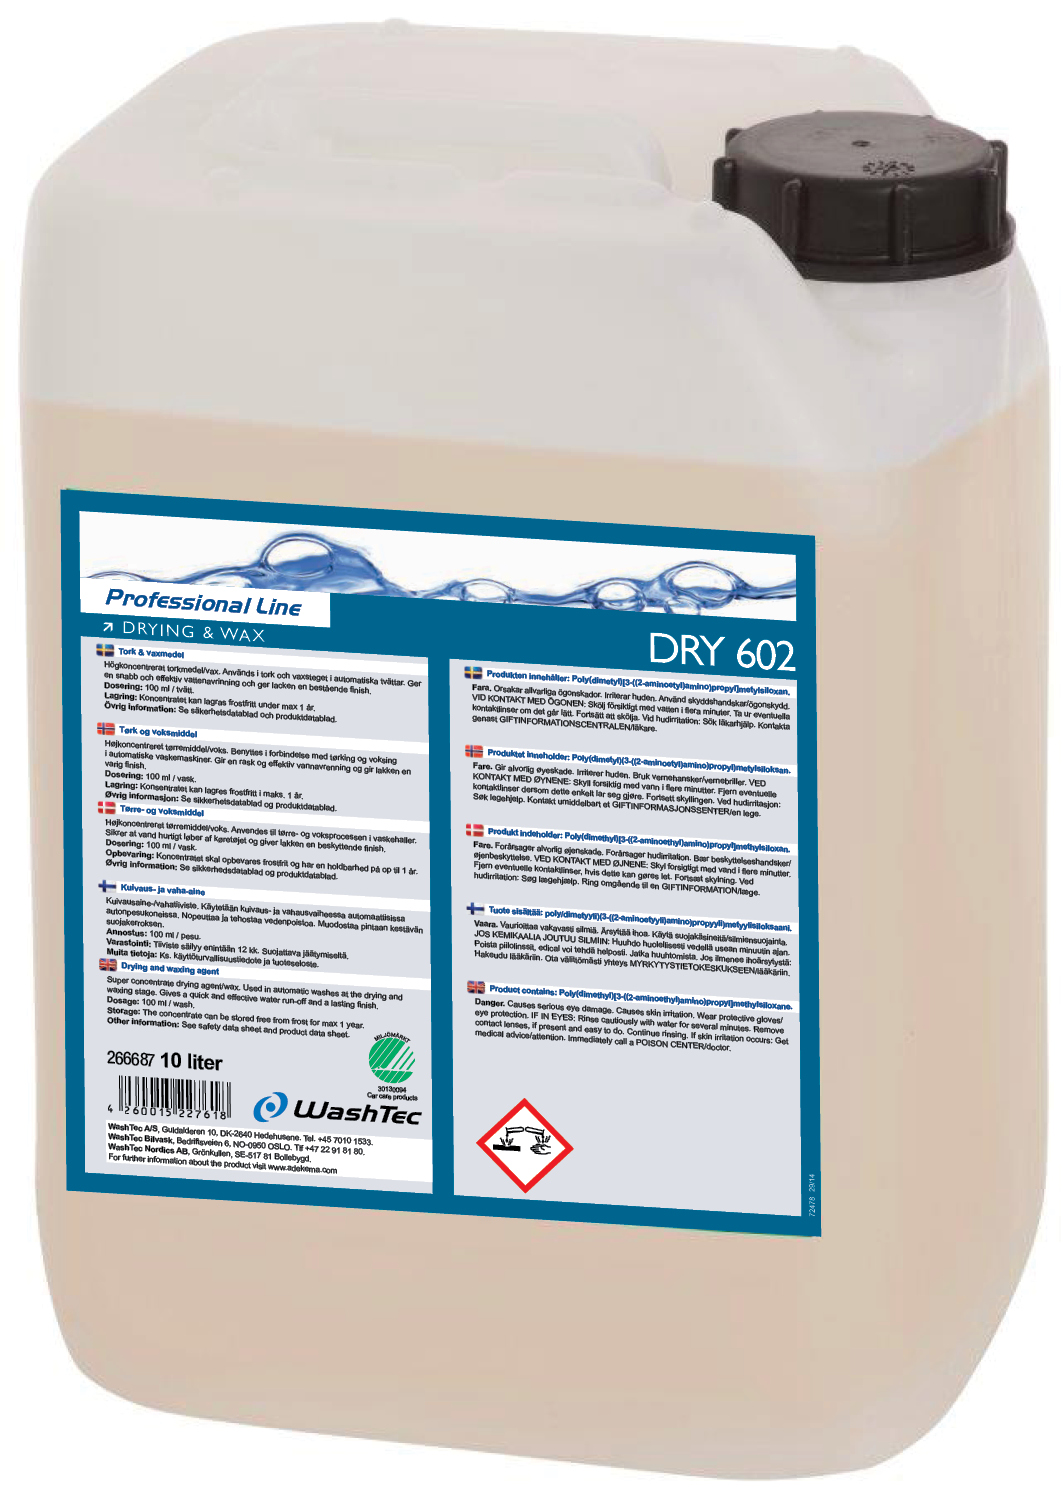 DRY 602 - Drying and Wax 10 L